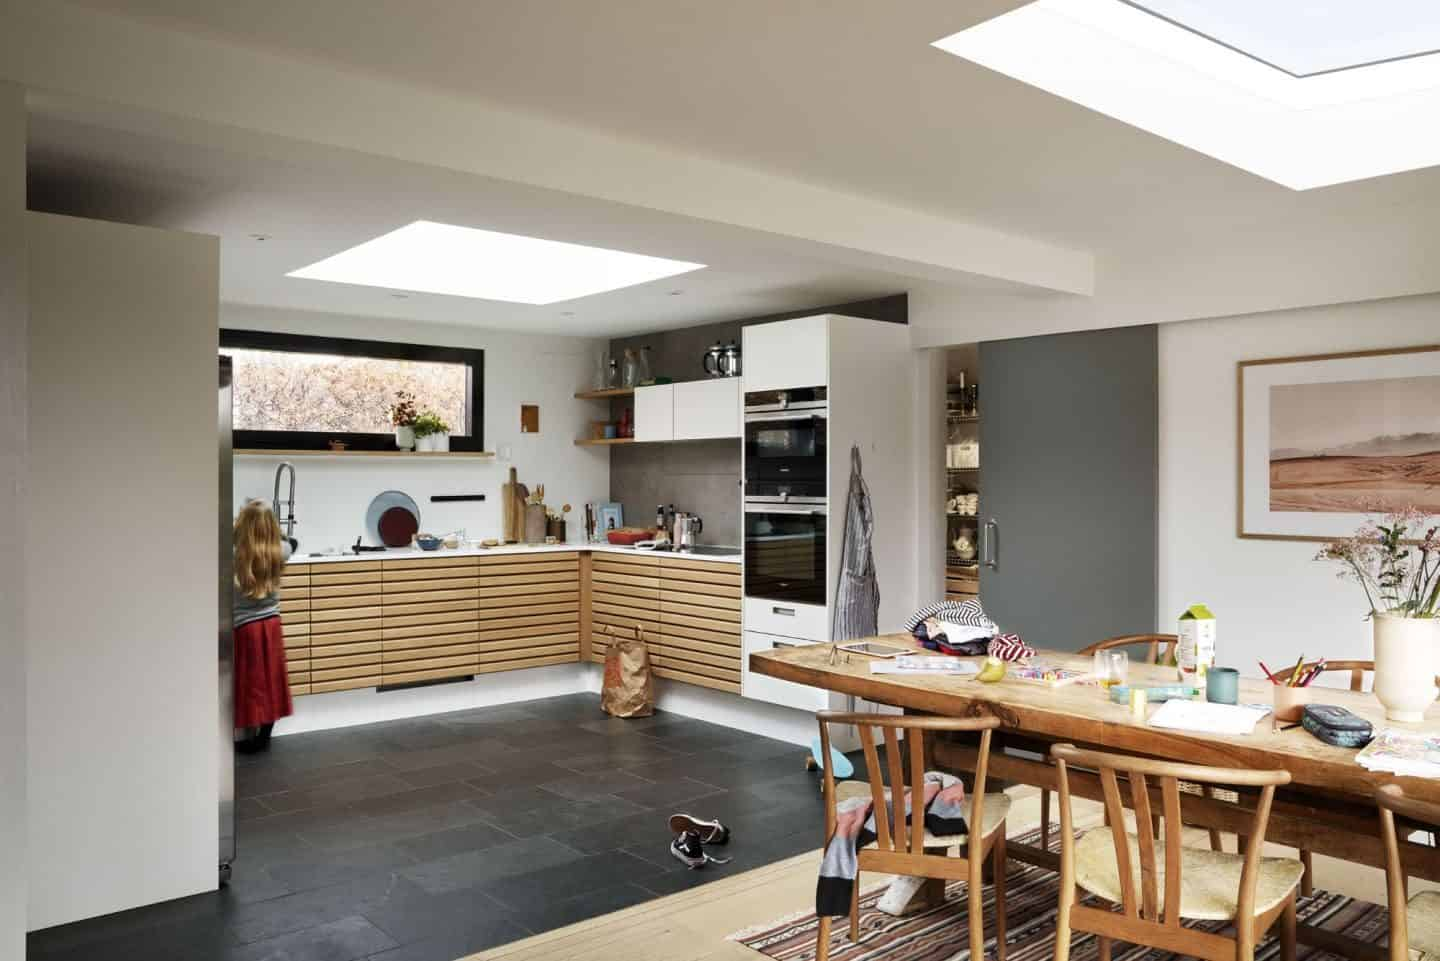 Vario by VELUX Bespoke Flat Roof Windows pictured above an open plan kitchen diner